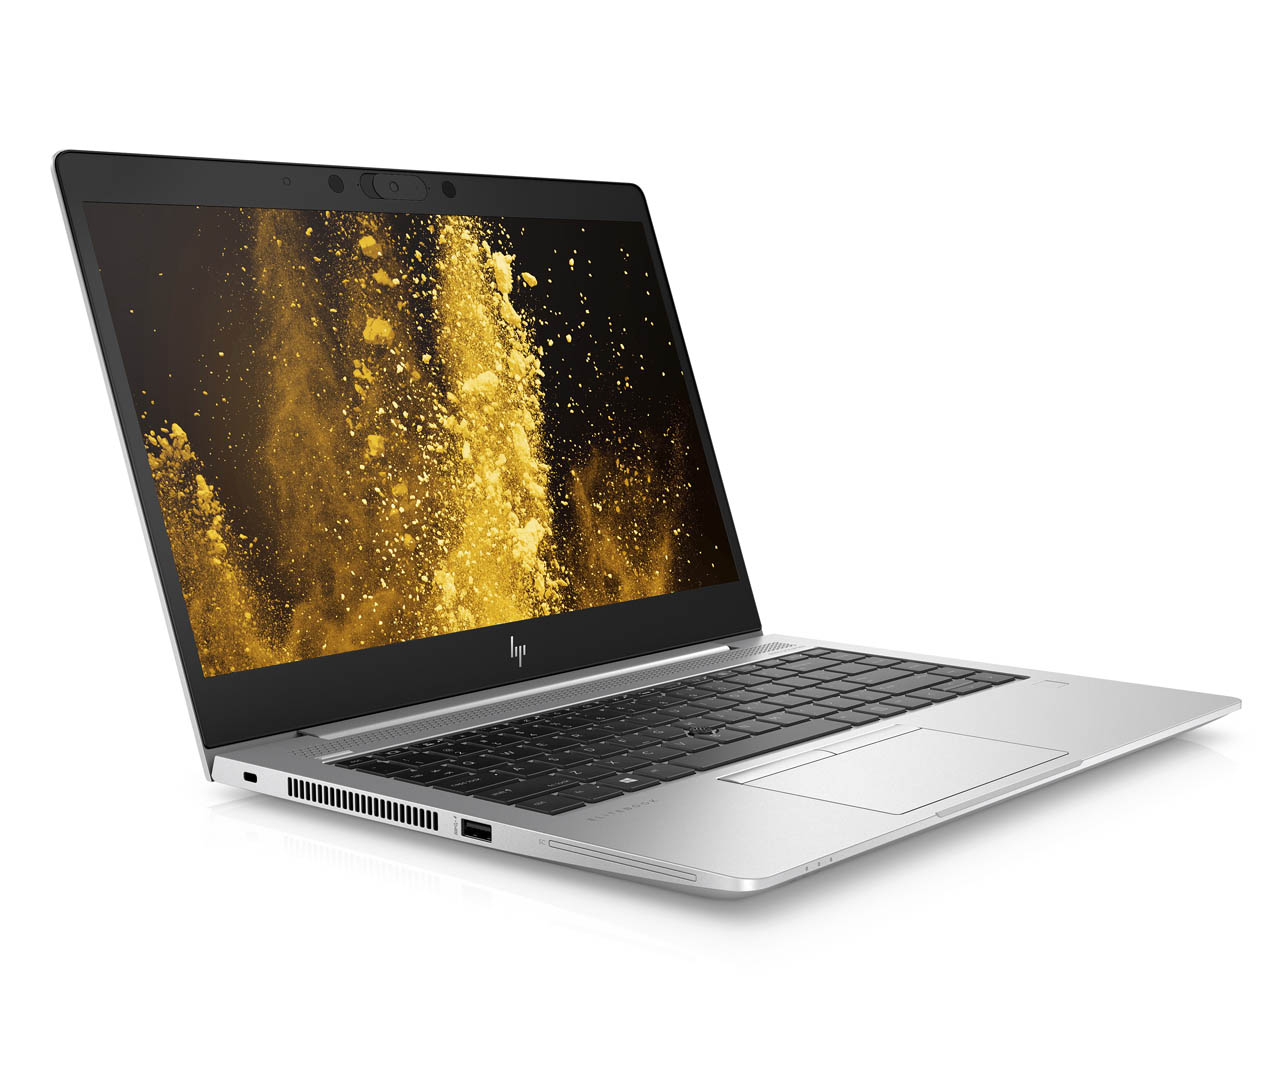 HP annuncia gli EliteBook 700 G6 e l'HP mt45 Mobile Thin Client 12